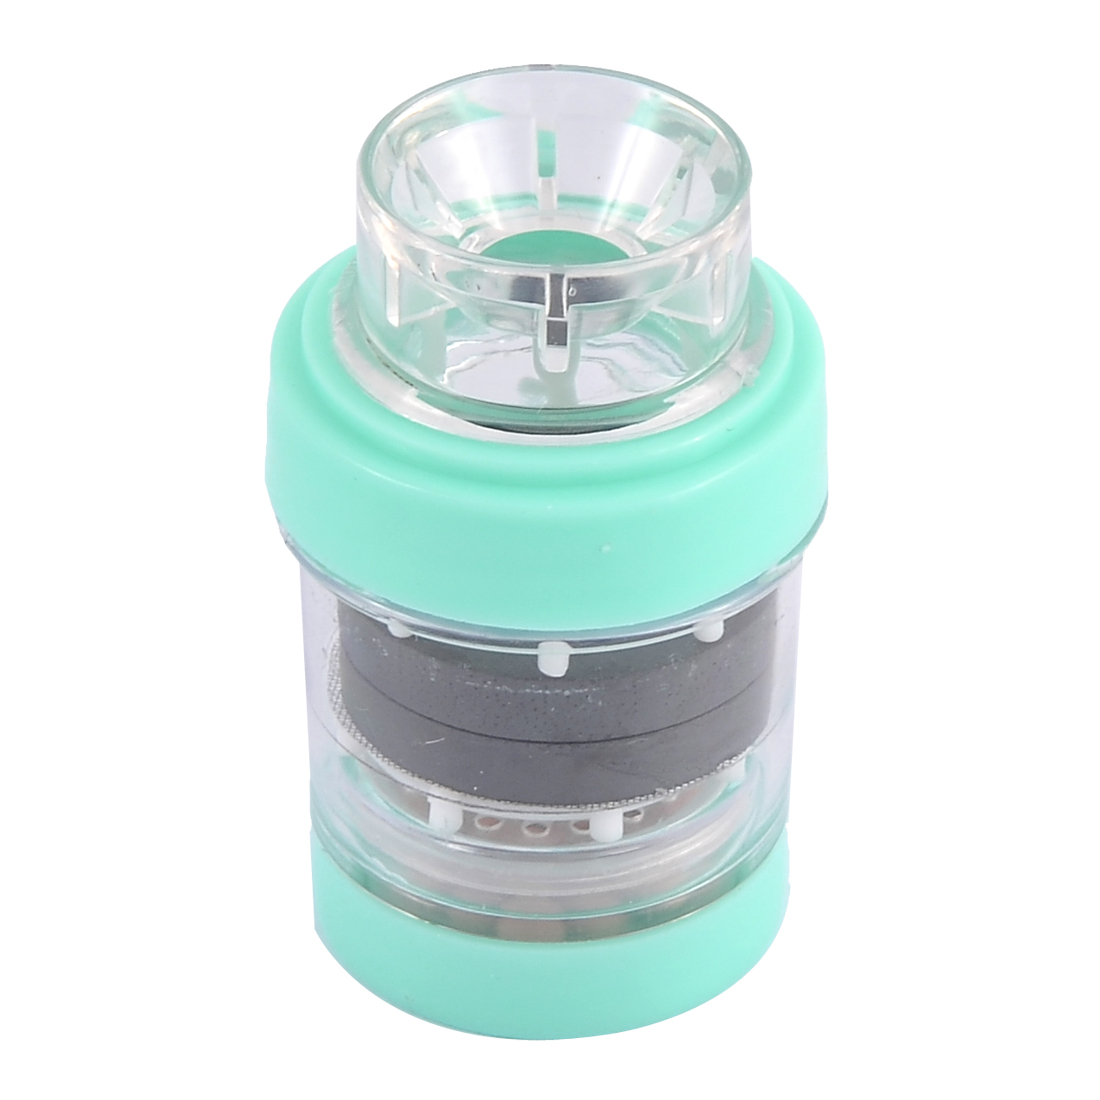 Plastic Tap Home Water Purifying Faucet Magnetic Filter Sky Blue 1.2 Inch Dia - image 3 de 3